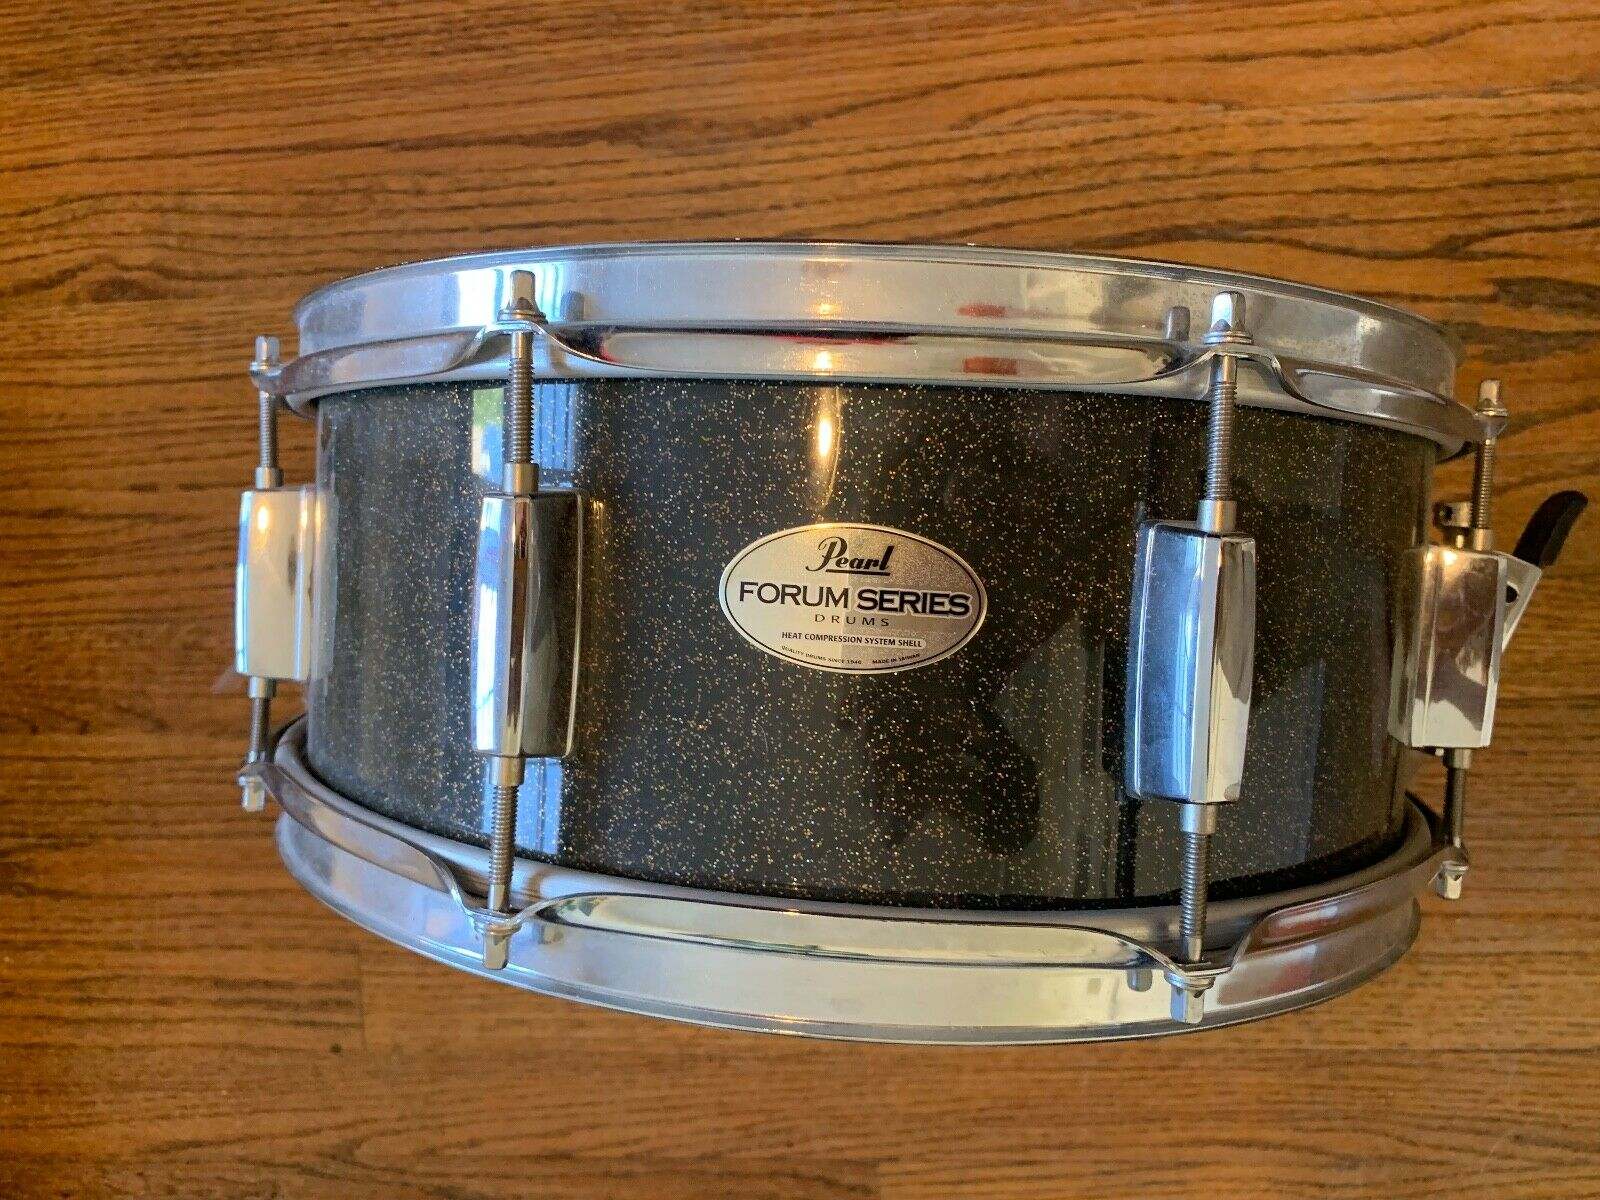 Pearl Forum Series Snare Drum 14